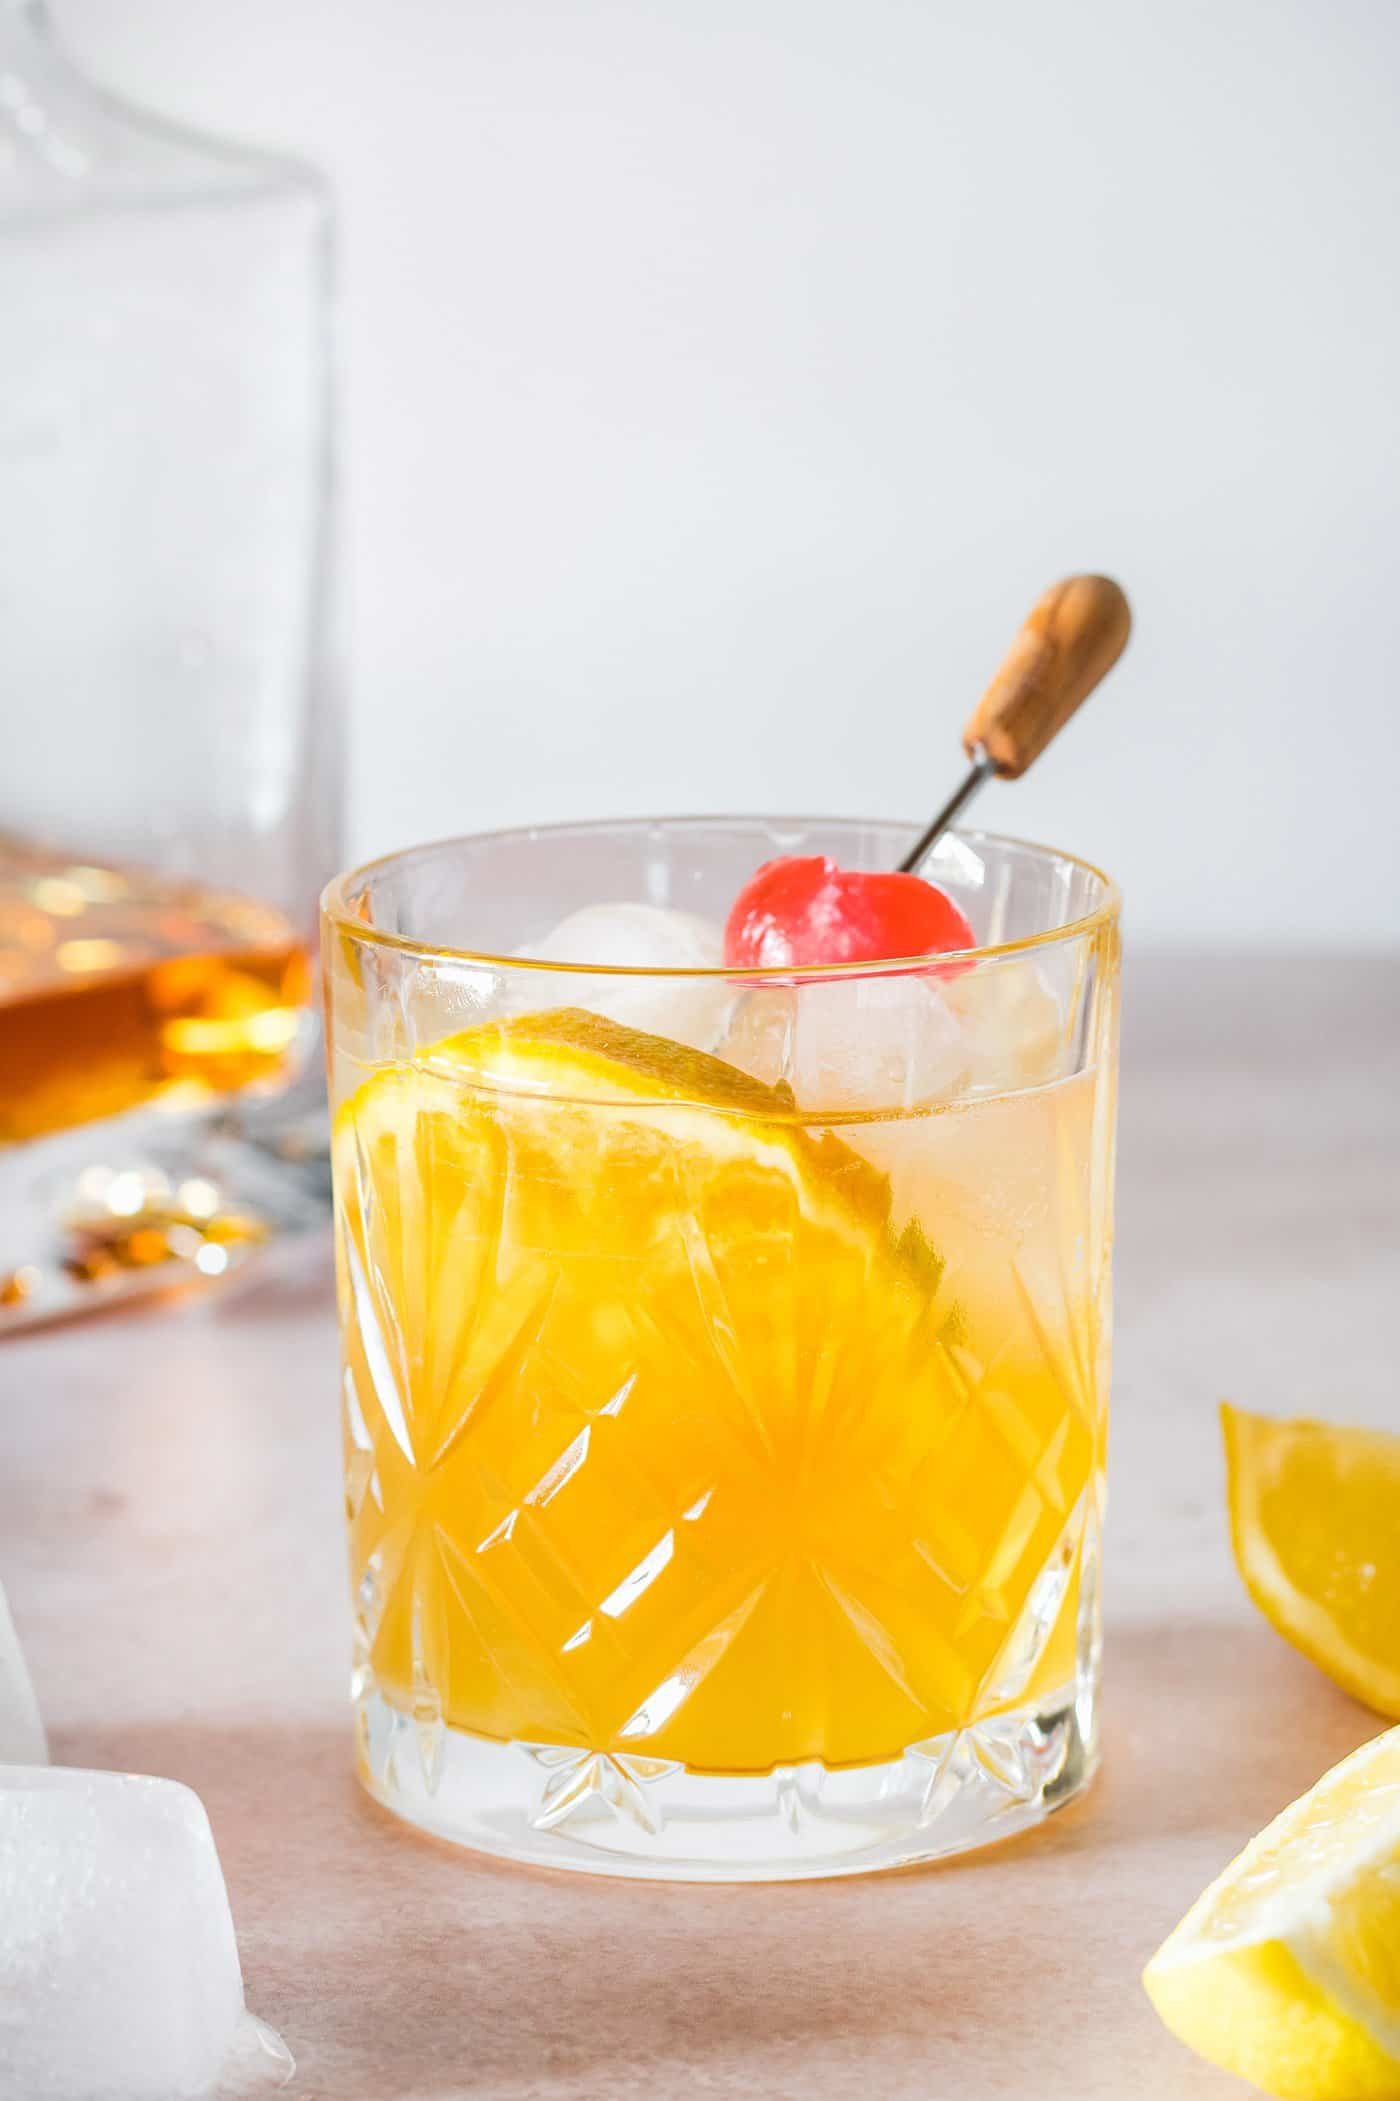 whiskey sour cocktail garnished with an orange slice and cherry